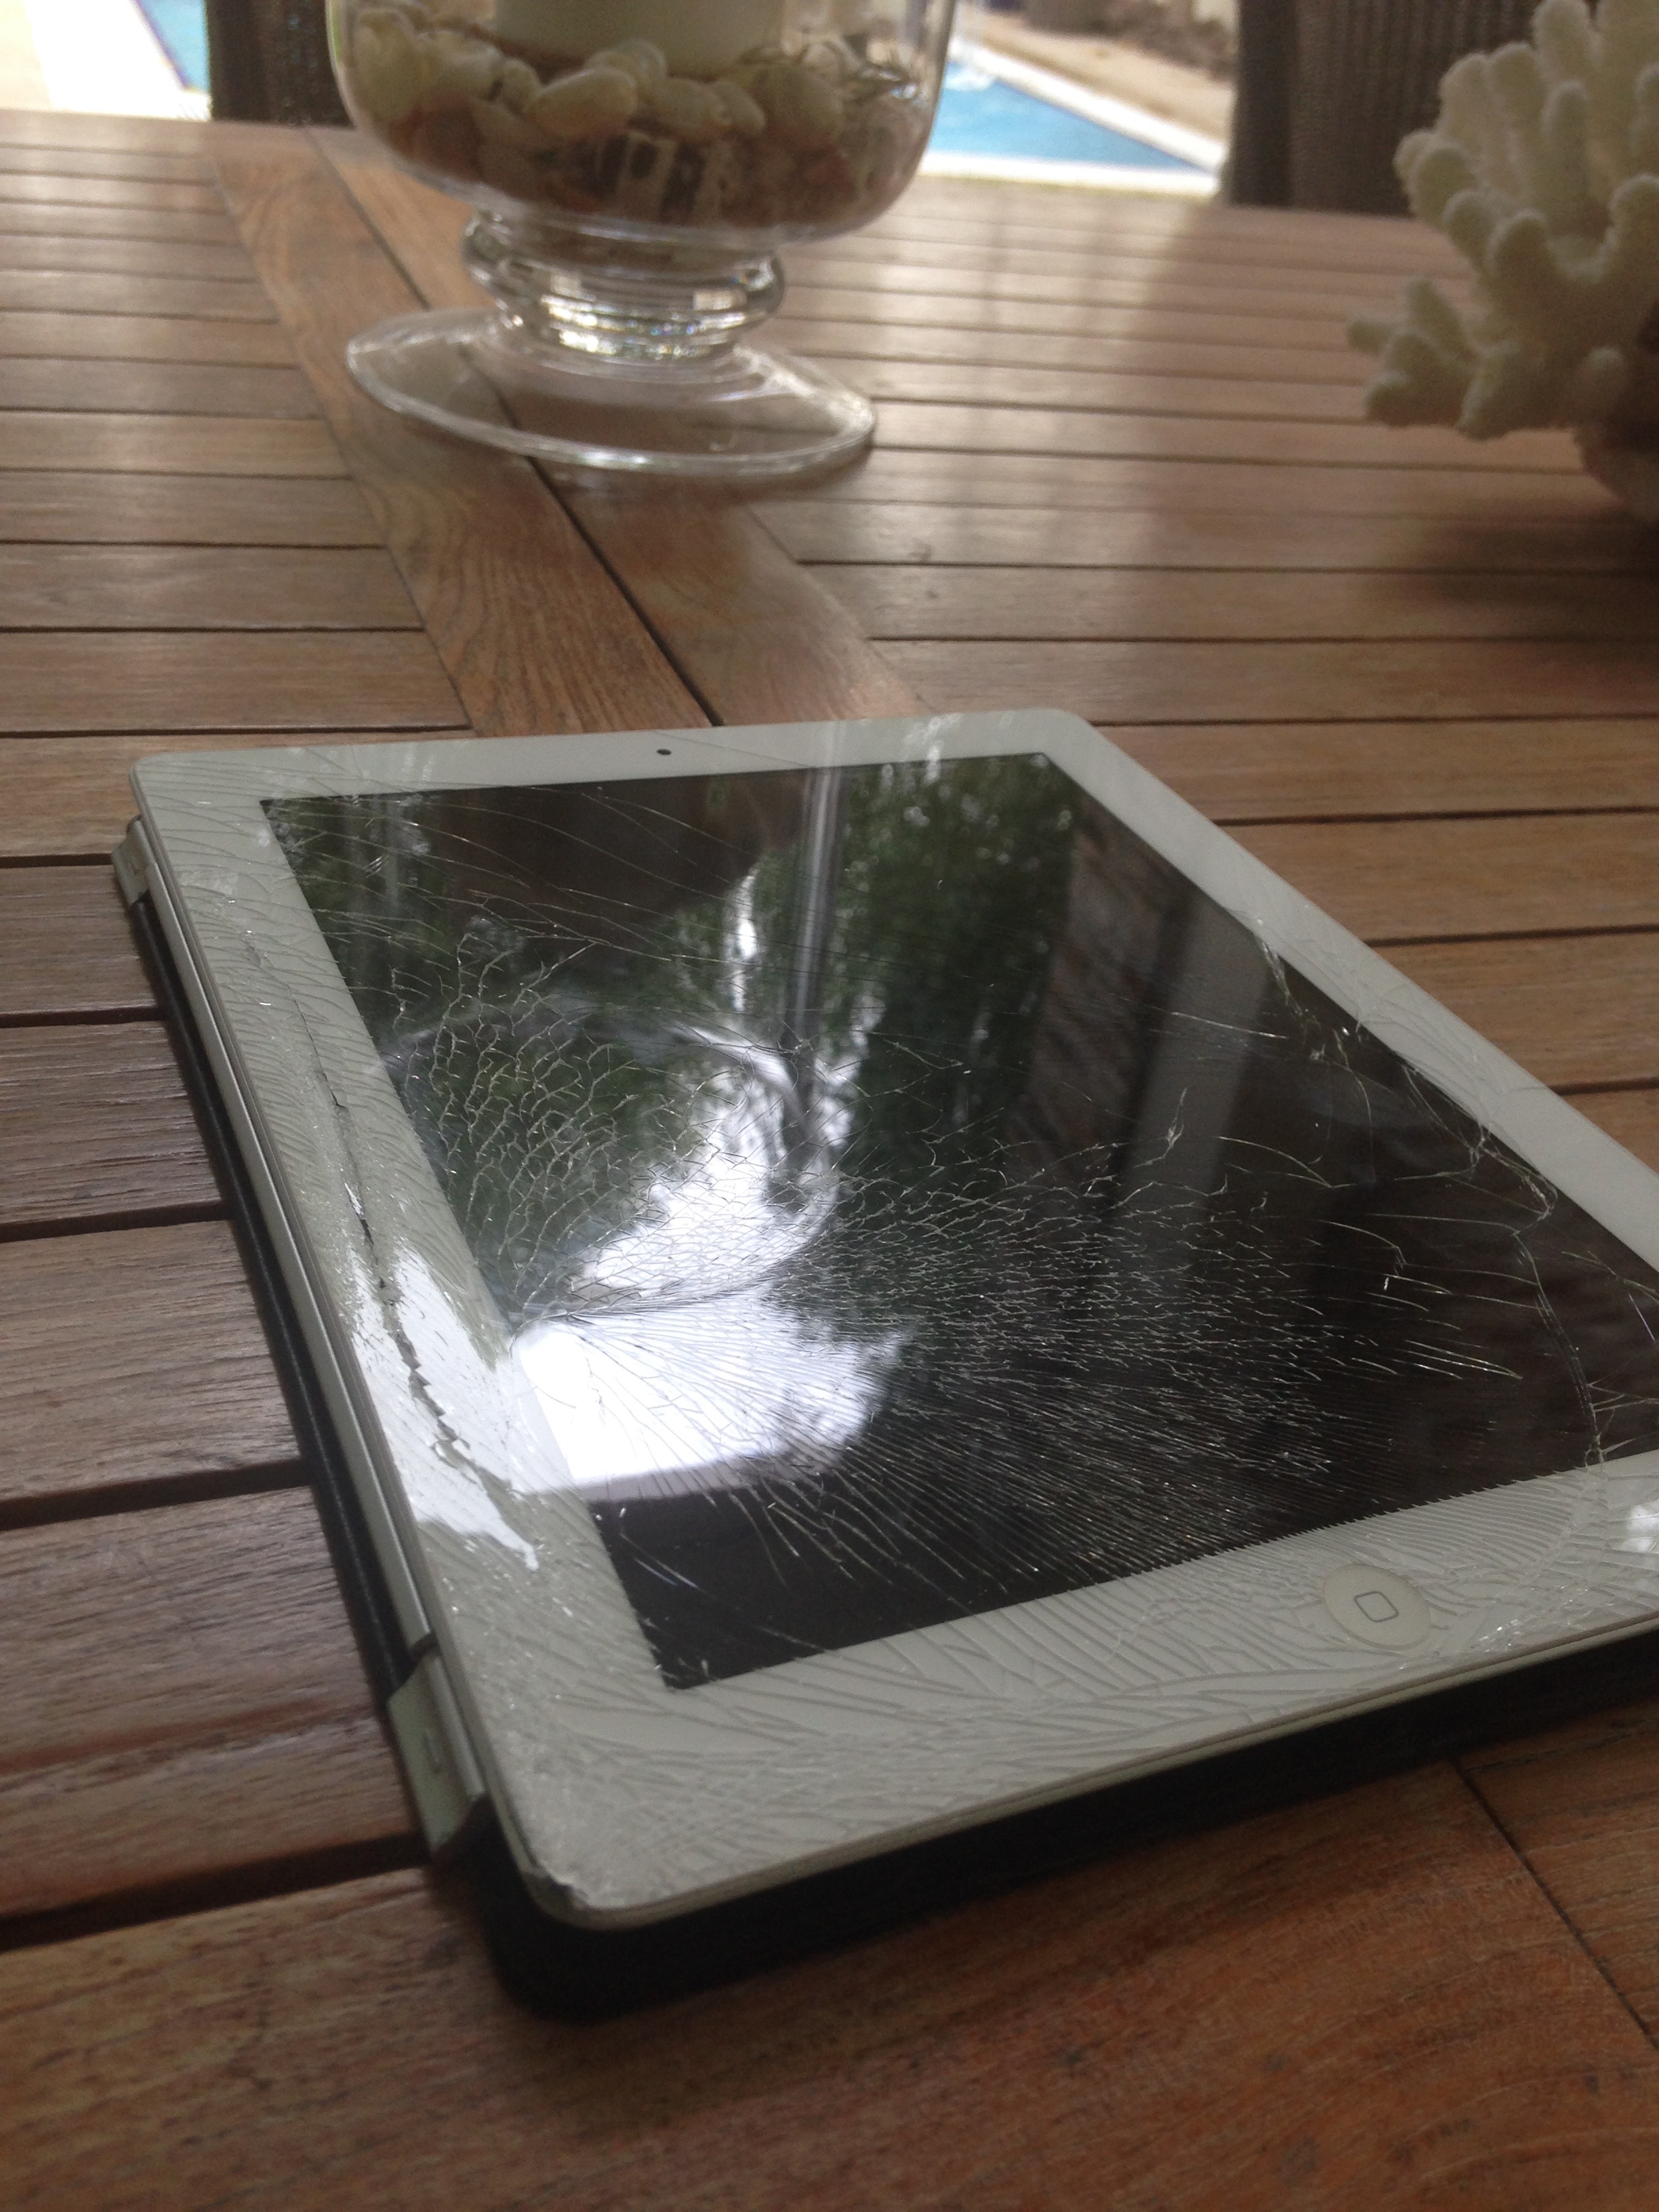 Poolside with a Cracked iPad Screen!